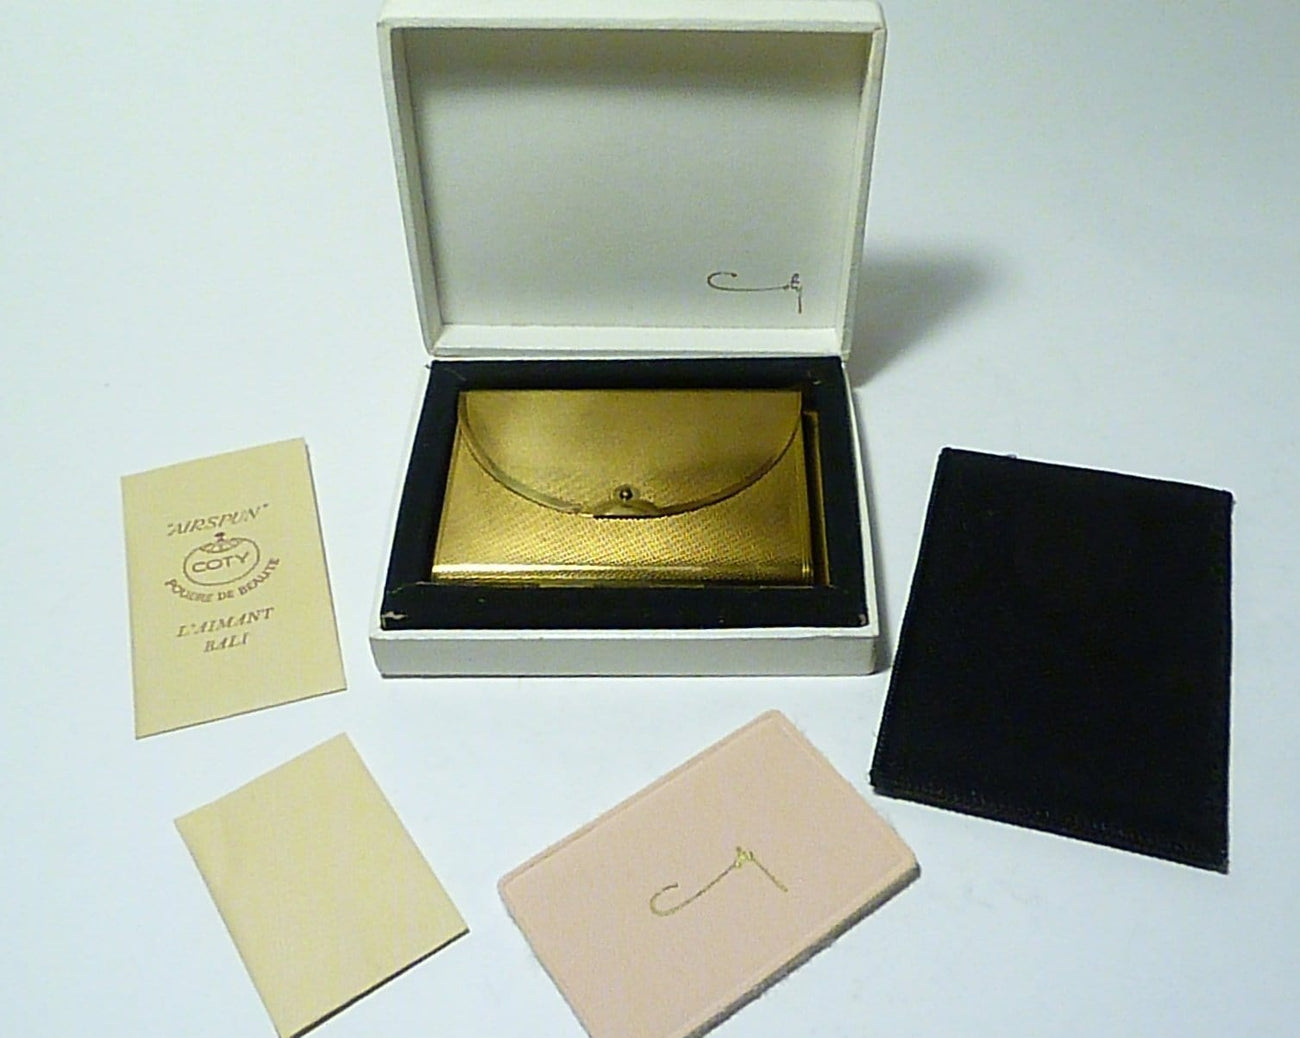 NOS compacts Coty ENVELOPE compact unused powder compacts something old gifts 1940s American novelty compact mirrors